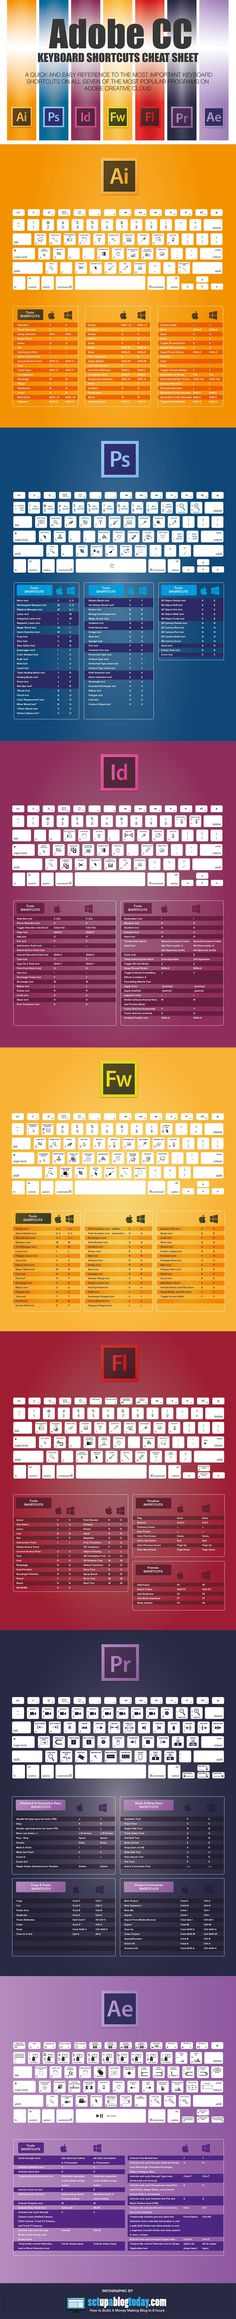 2015-ultimate-adobe-cc-keyboard-shortcuts-cheatsheet.jpg